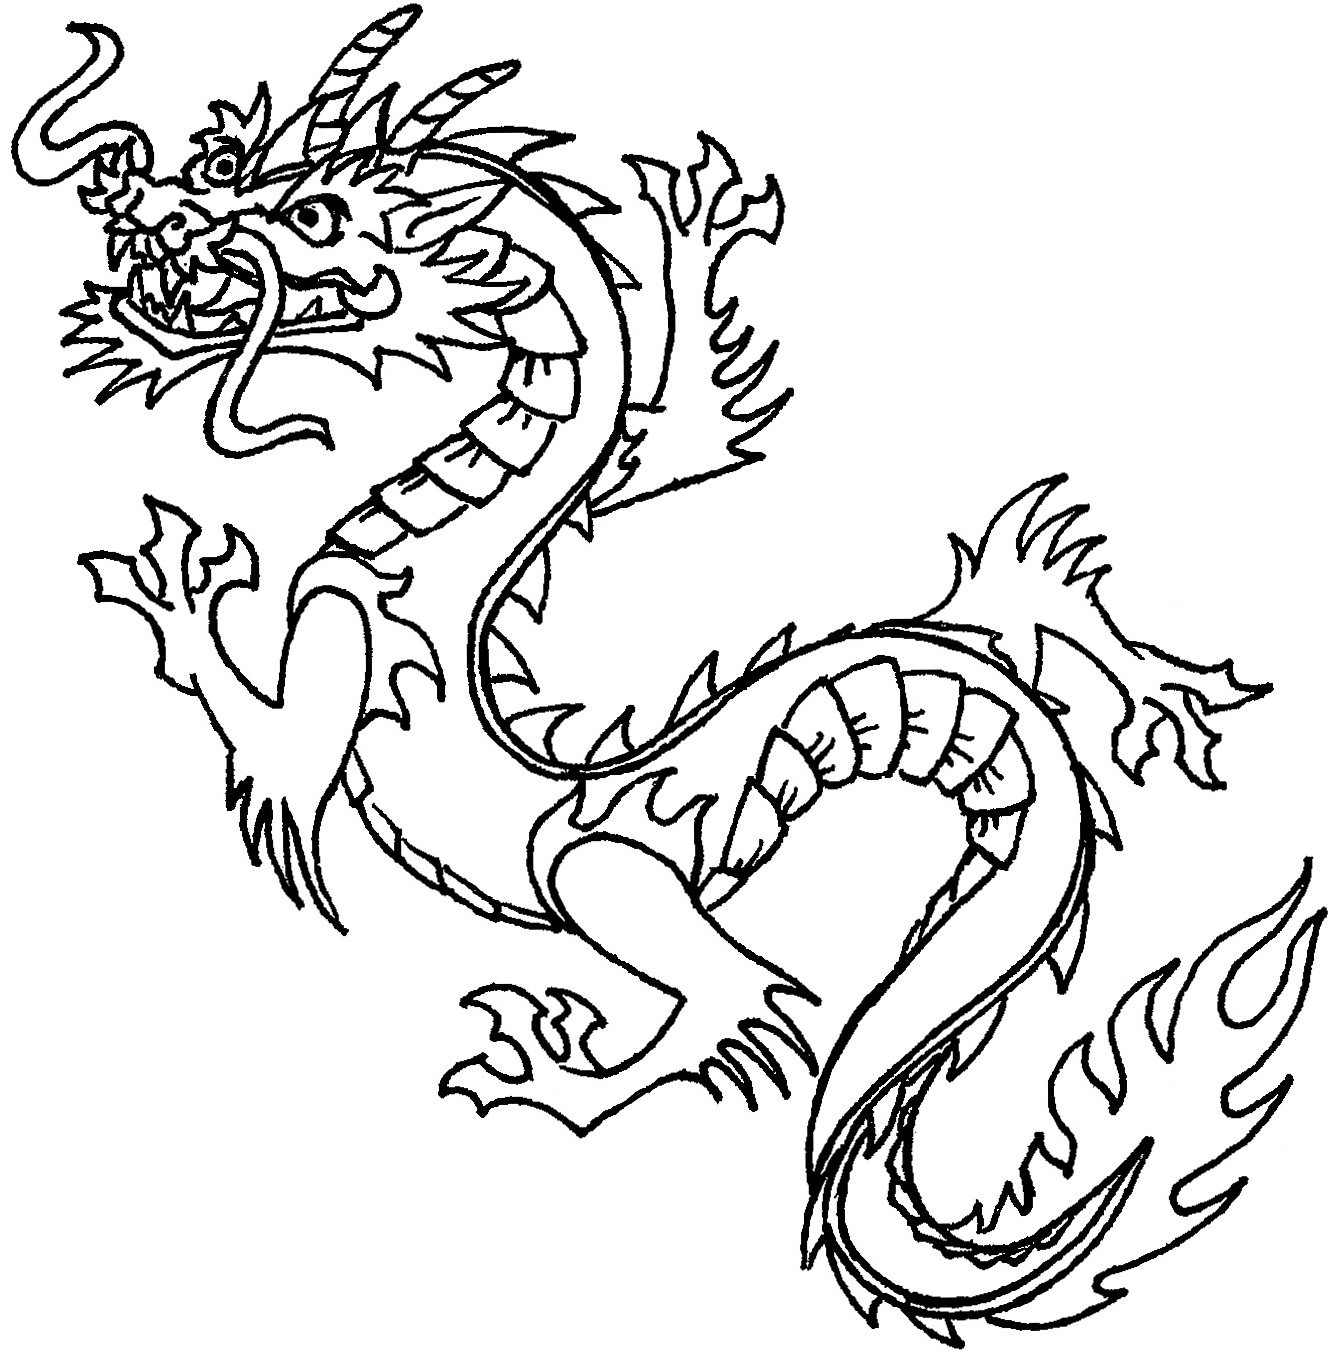 chinese dragon colouring page free printable chinese dragon coloring pages for kids colouring page chinese dragon